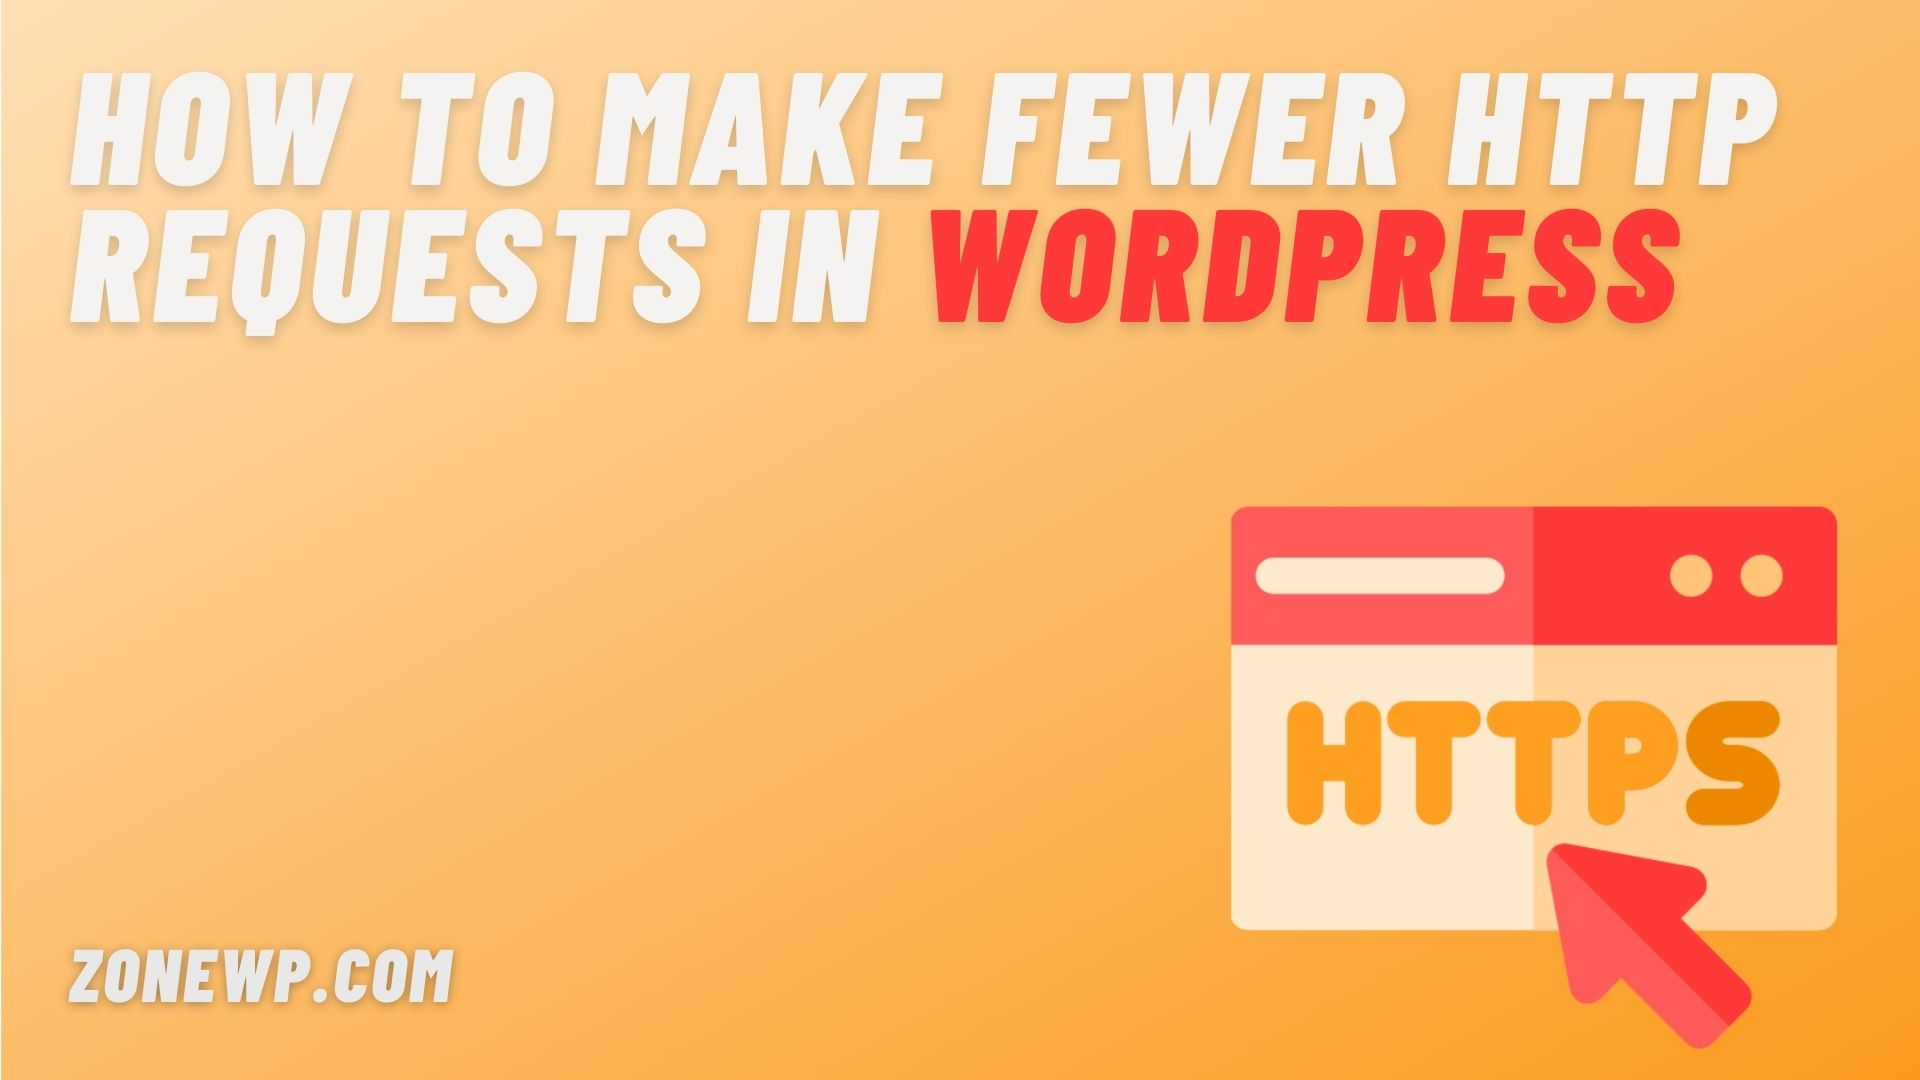 How to make fewer HTTP Requests in WordPress